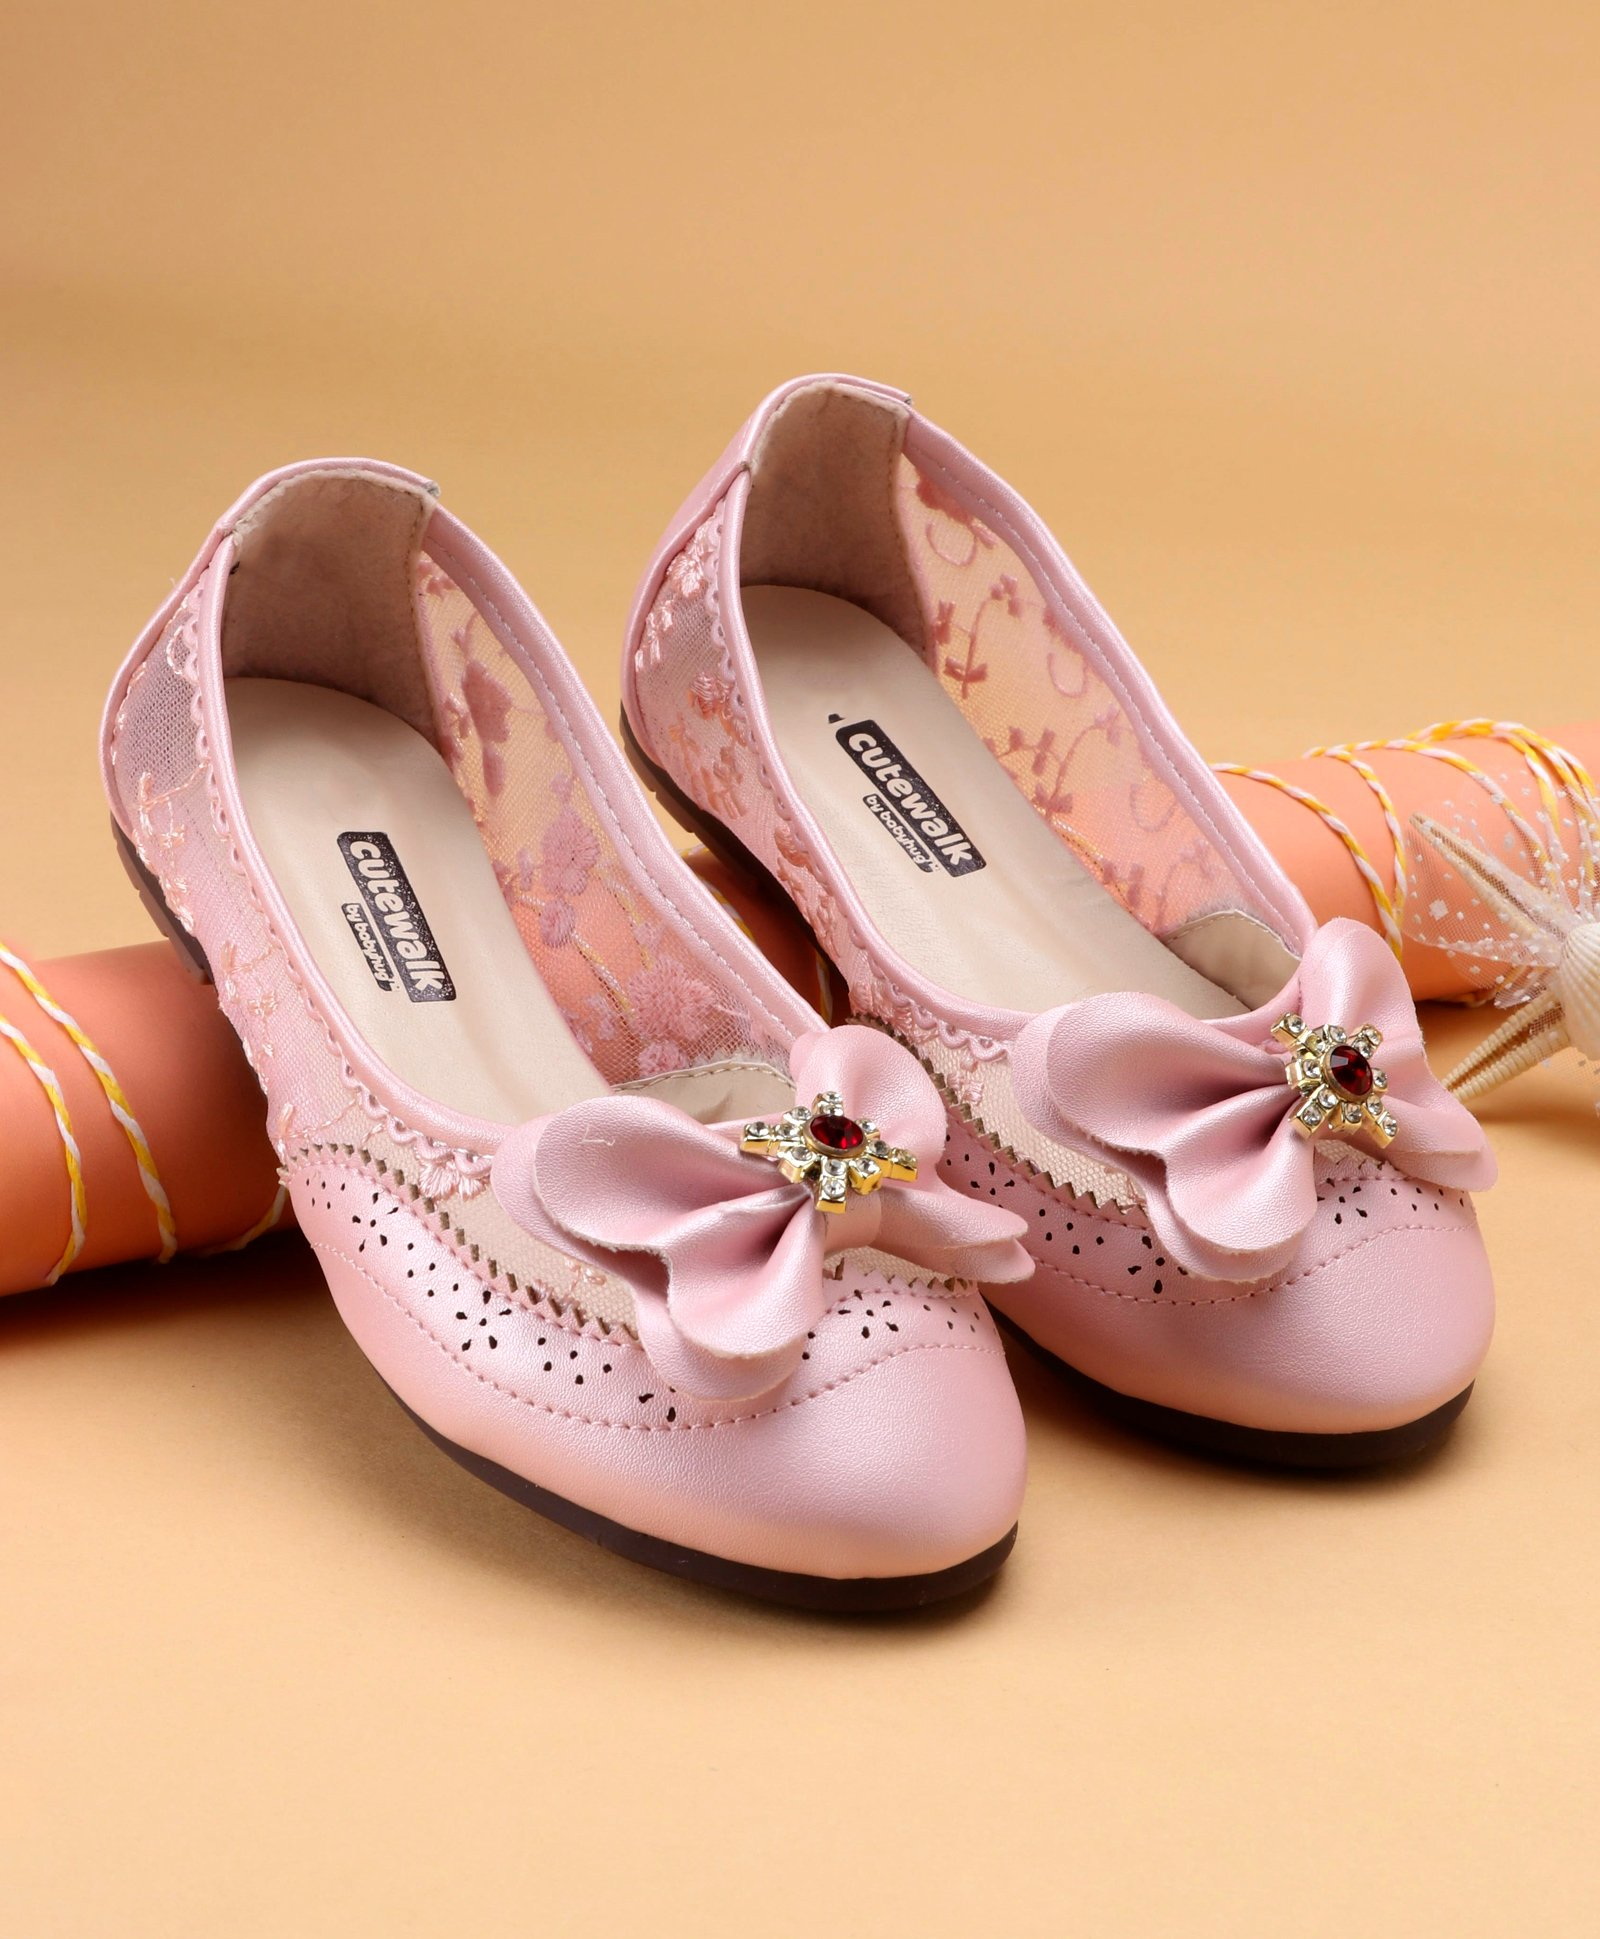 e7679fbe0 Buy Cute Walk by Babyhug Belly Shoes Studded Bow Design Light ...